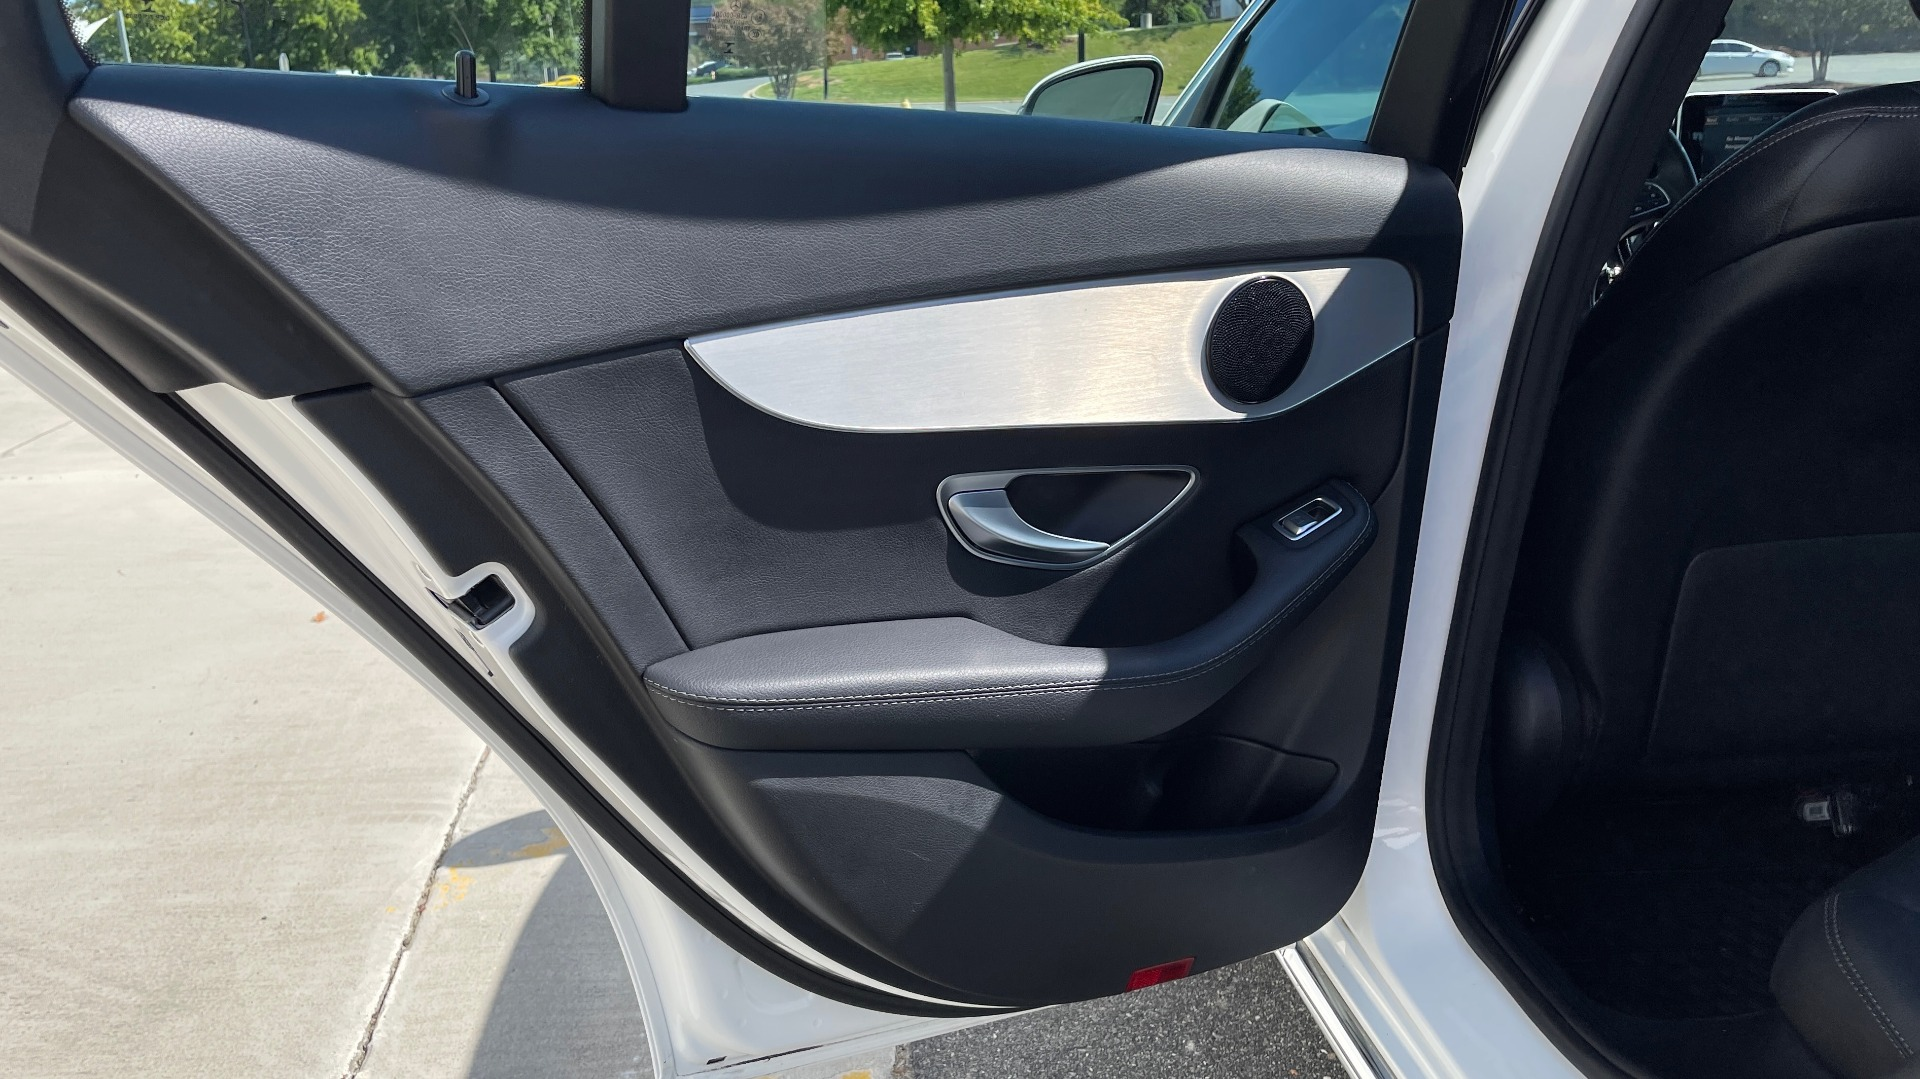 Used 2018 Mercedes-Benz C-CLASS C 300 PREMIUM / APPLE CARPLAY / KEYLESS-GO / SUNROOF / REARVIEW for sale $32,995 at Formula Imports in Charlotte NC 28227 40